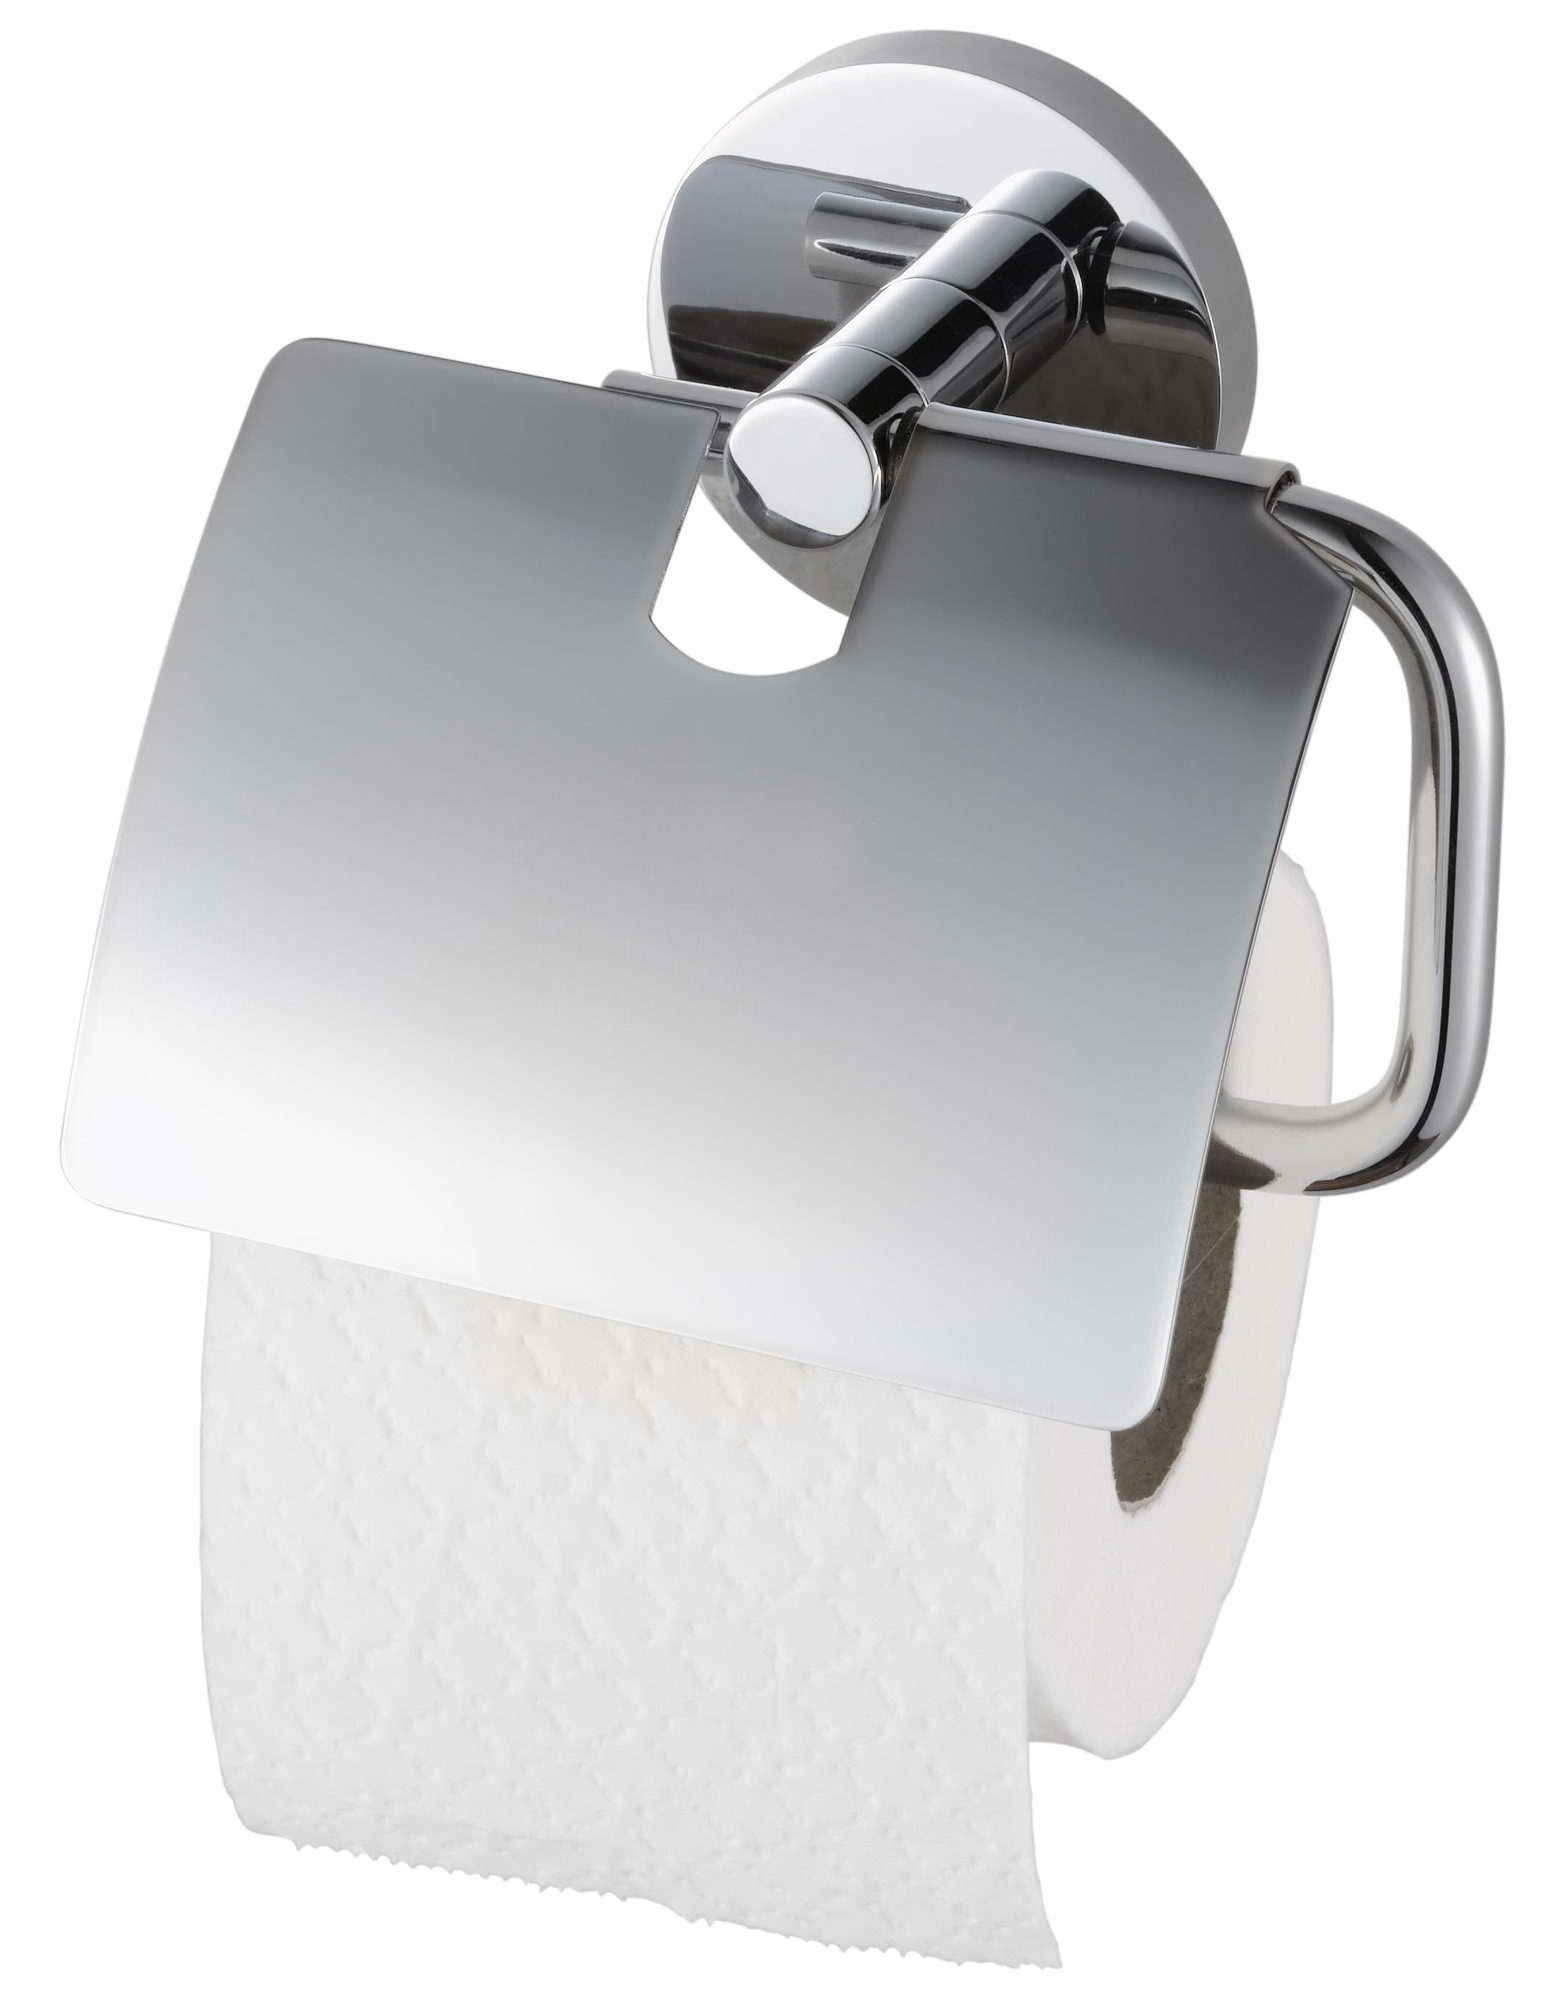 Aqualux Haceka Pro 2000 Toilet Roll Holder With Lid 1190860